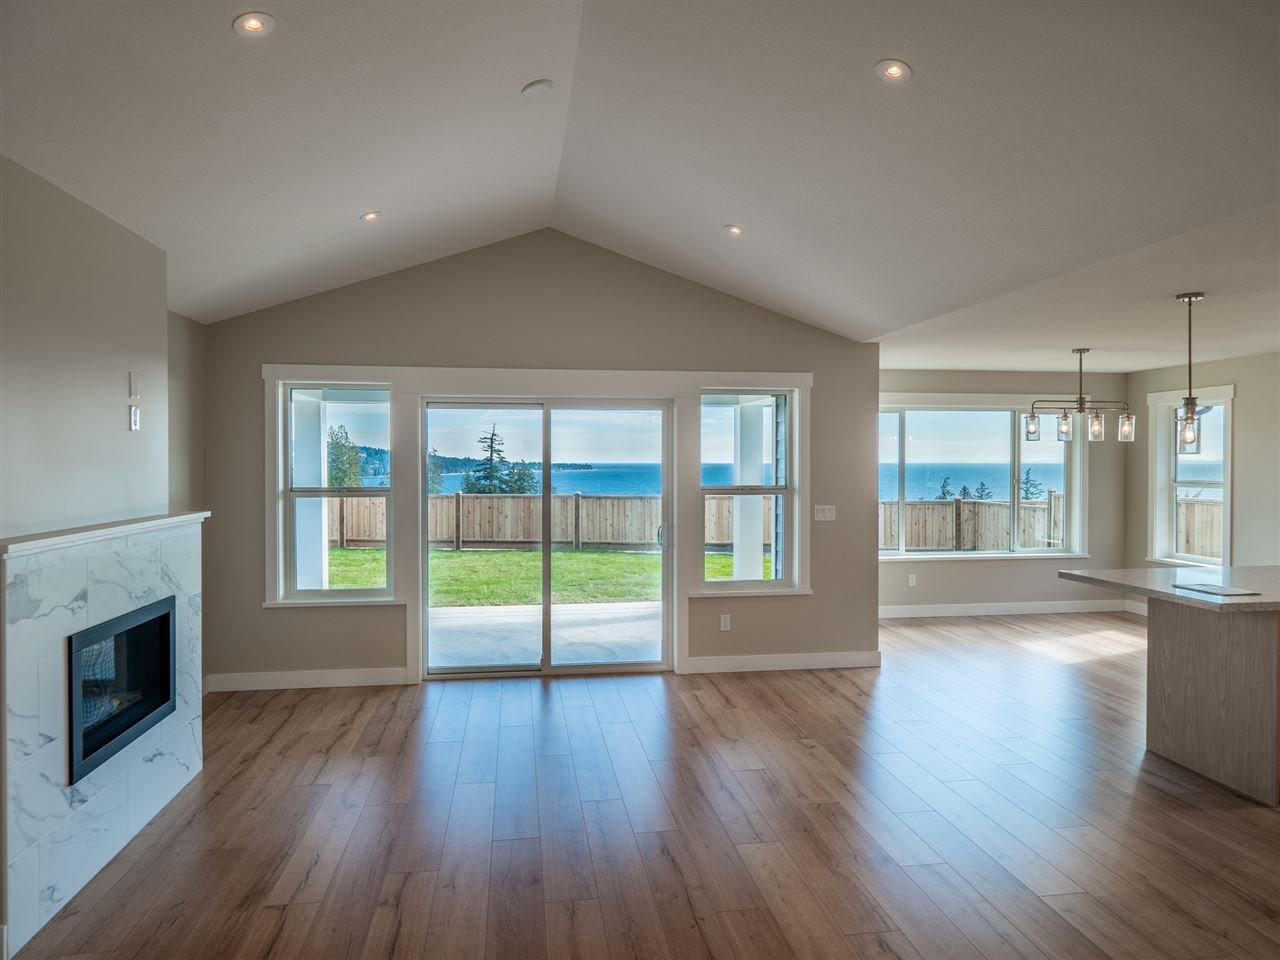 """Photo 13: Photos: 5634 KINGBIRD Crescent in Sechelt: Sechelt District House for sale in """"SilverStone Heights Phase2"""" (Sunshine Coast)  : MLS®# R2466073"""